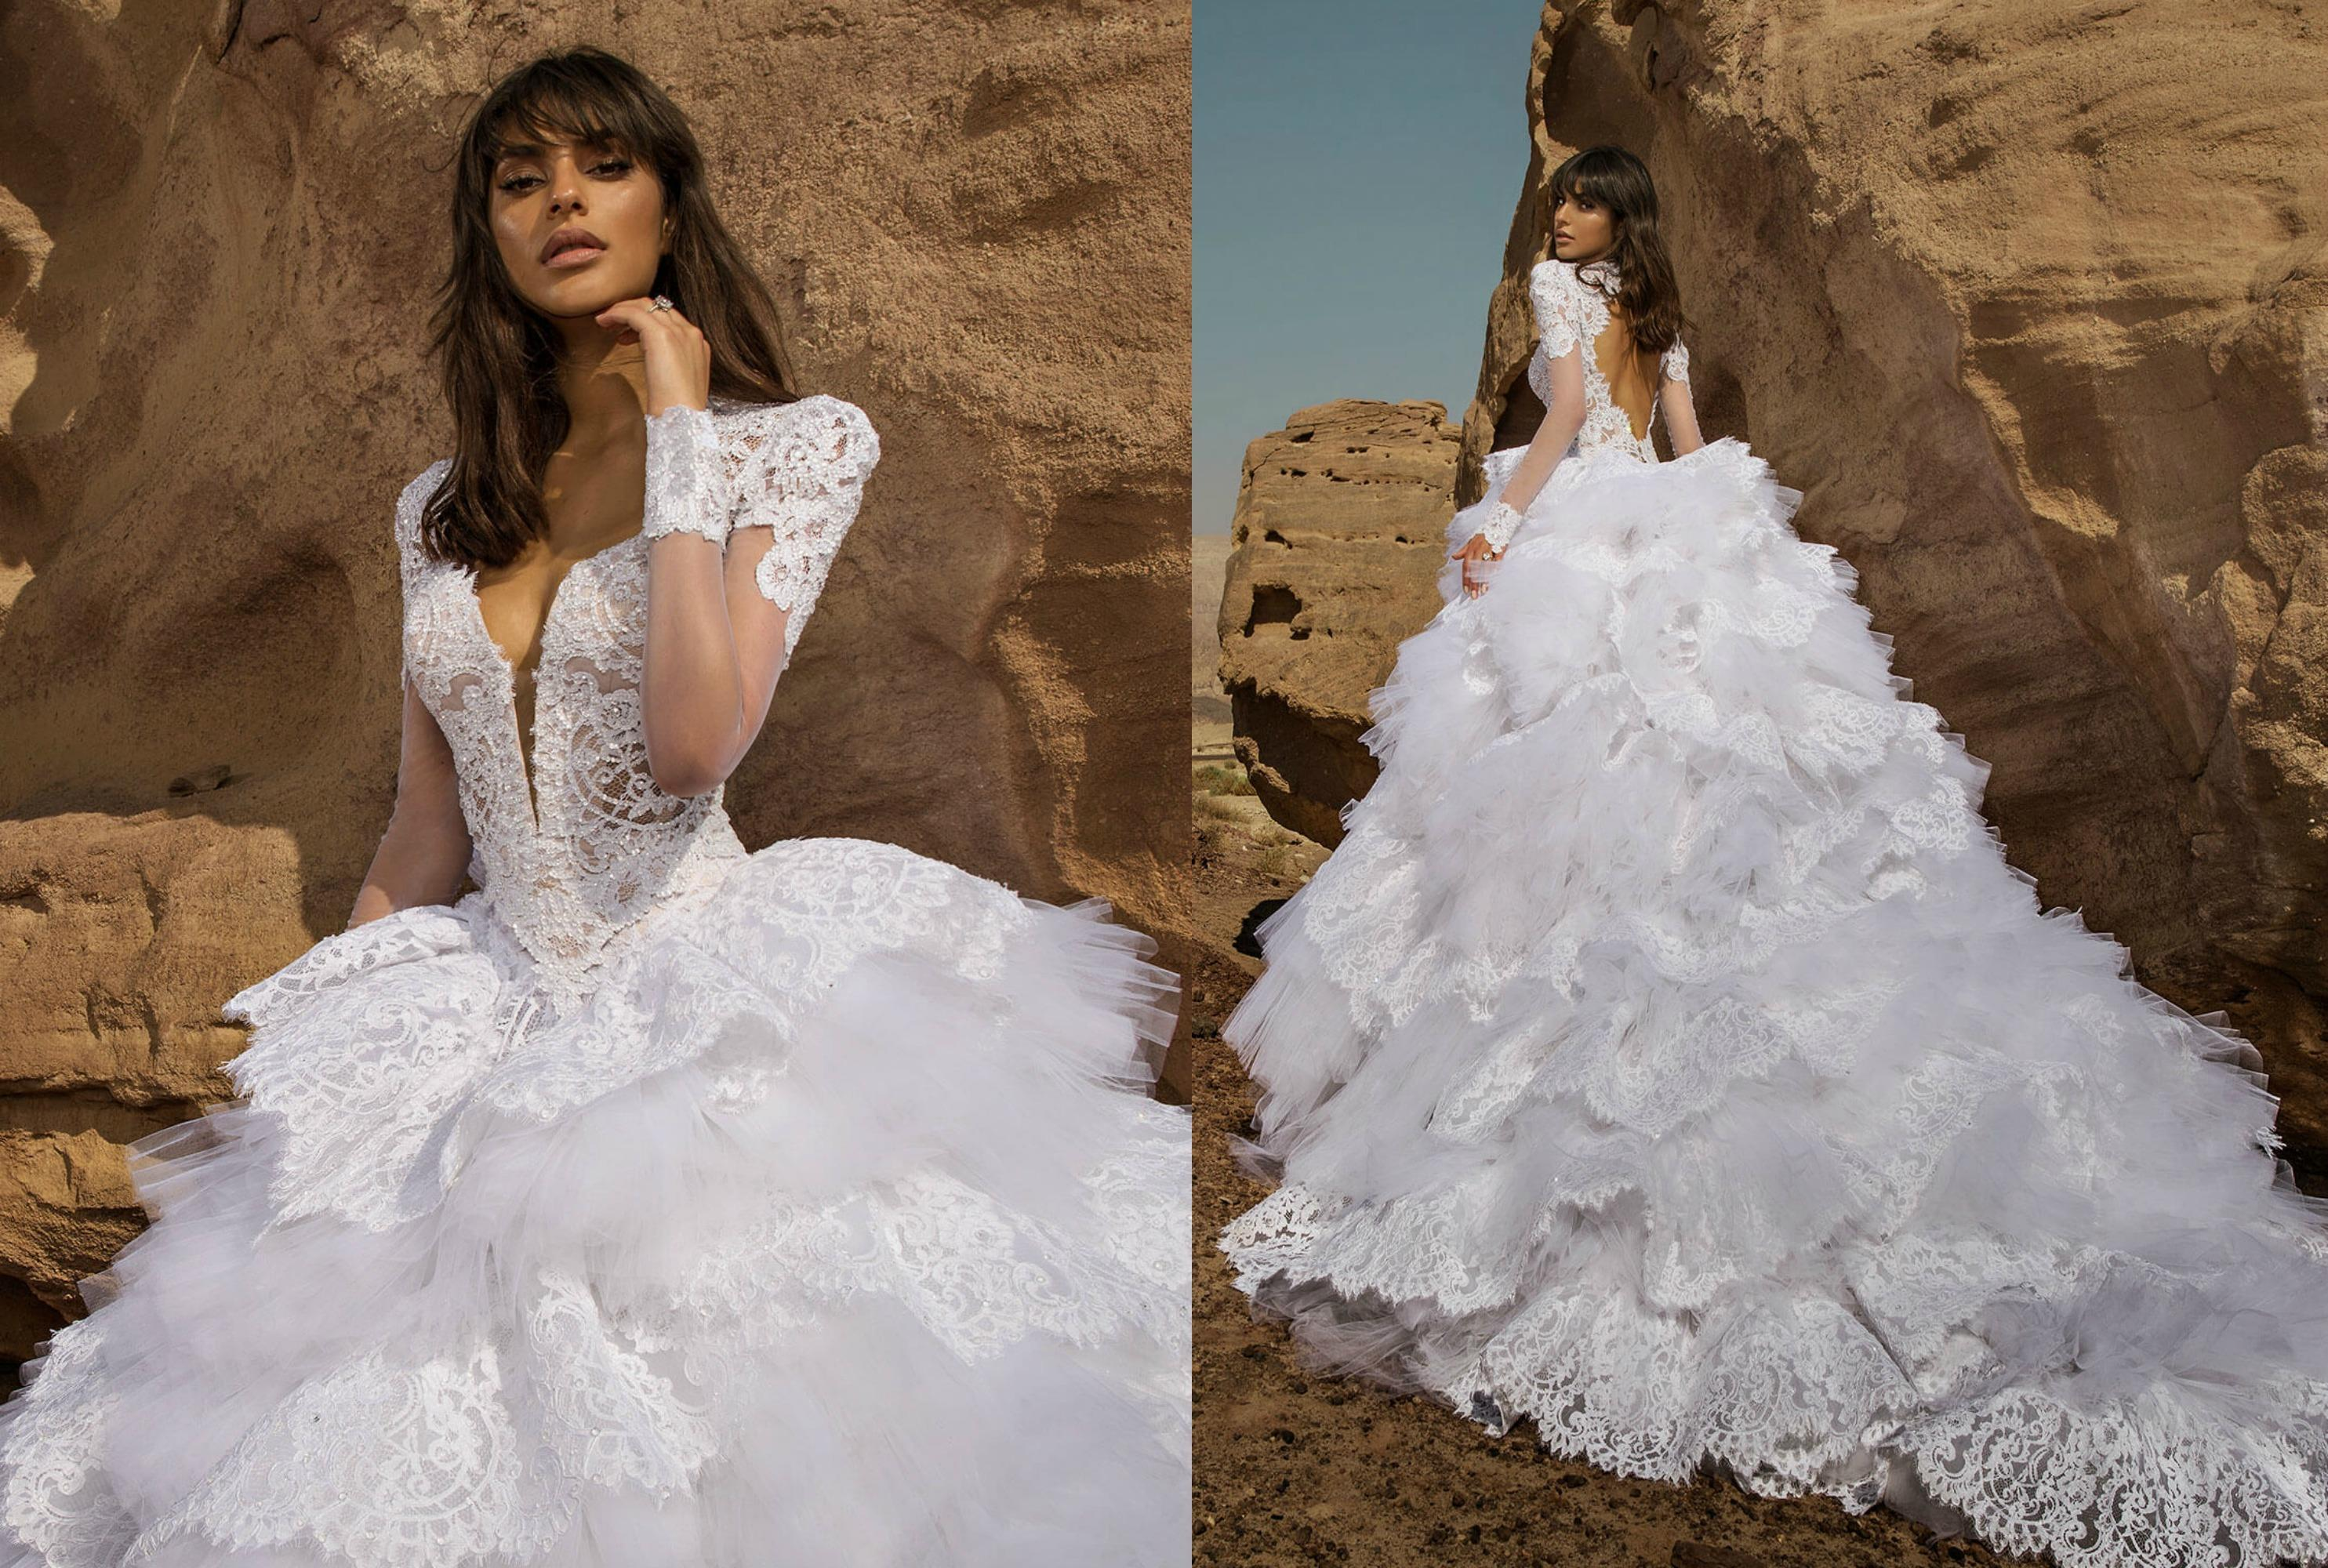 pnina tornai s favorite ball gowns say yes to the dress tlc